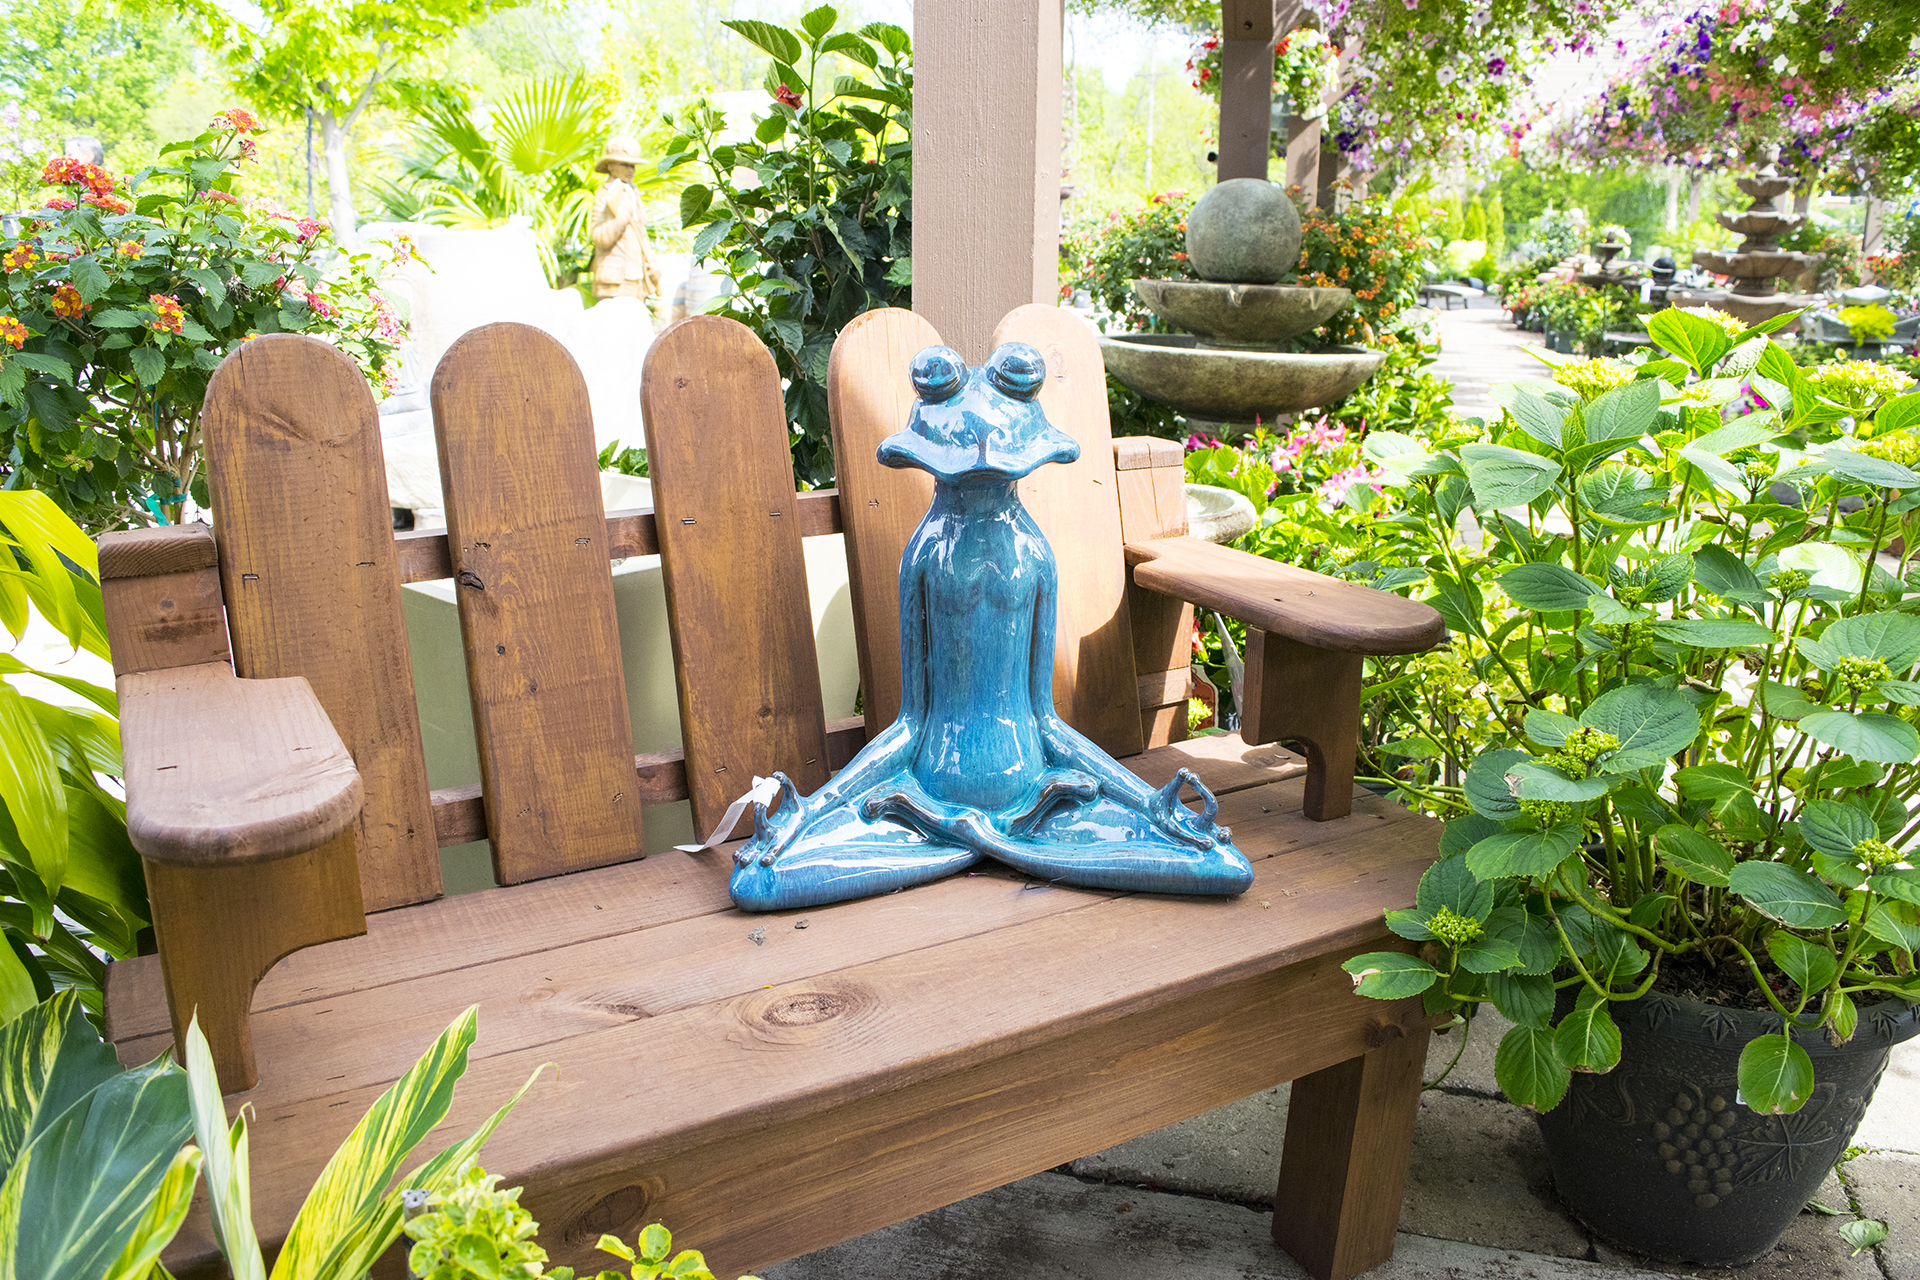 Outdoor Decor and Furniture - spruce up your outdoor living space